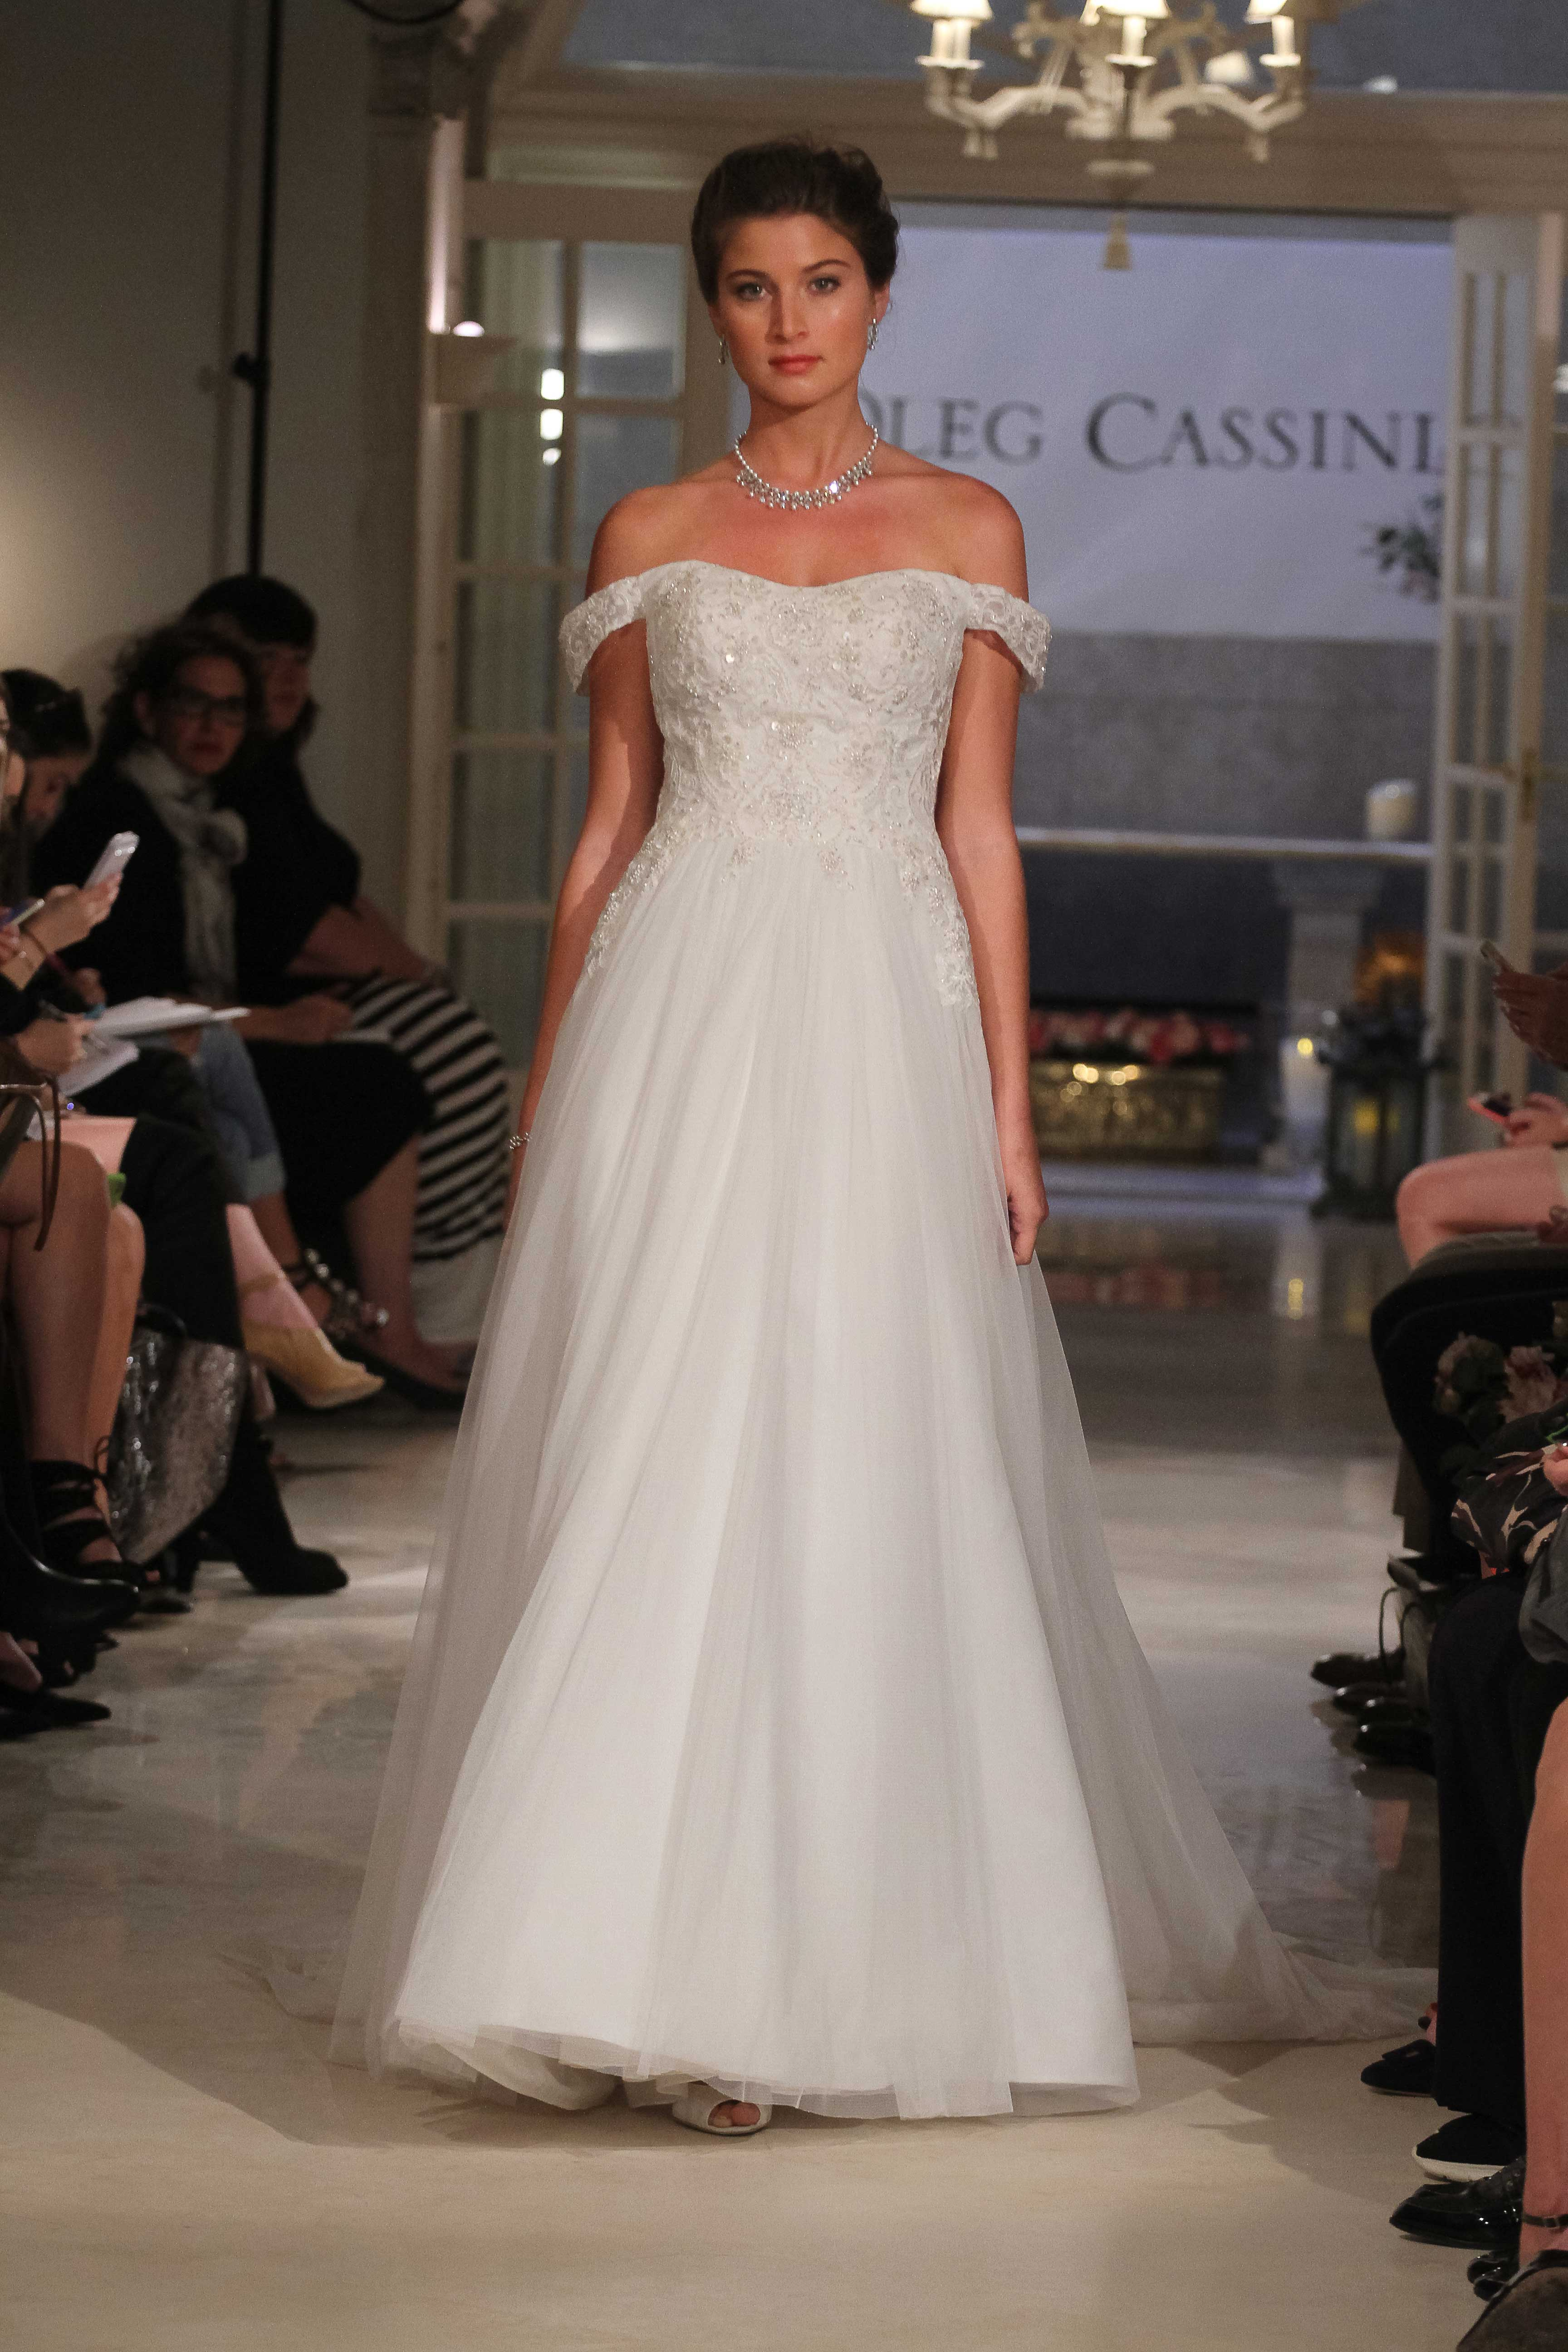 8b0022cd2cd Oleg Cassini at David s Bridal CWG729 off the shoulder ball gown wedding  dress